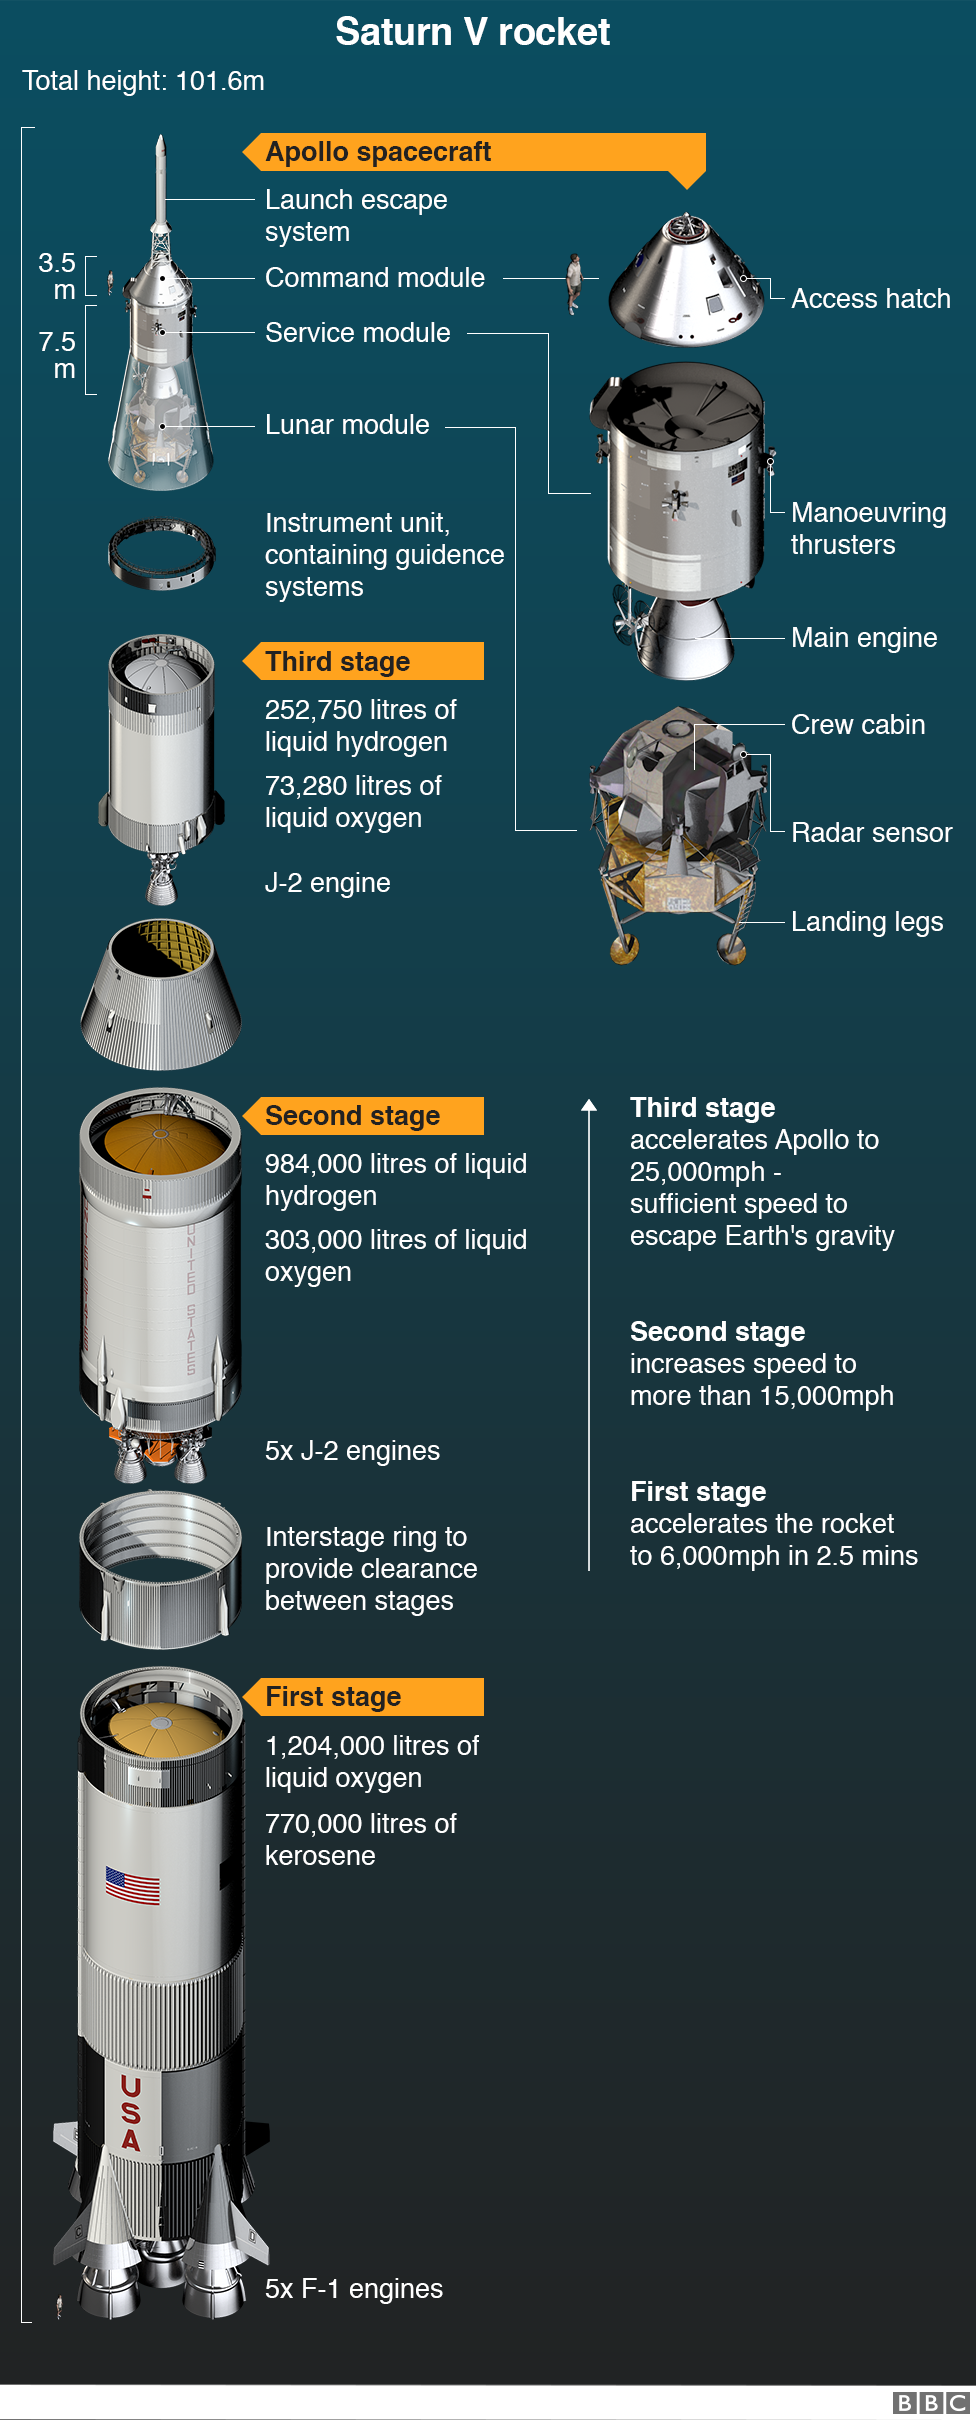 Infographic of the Saturn V rocket and Apollo spacecraft